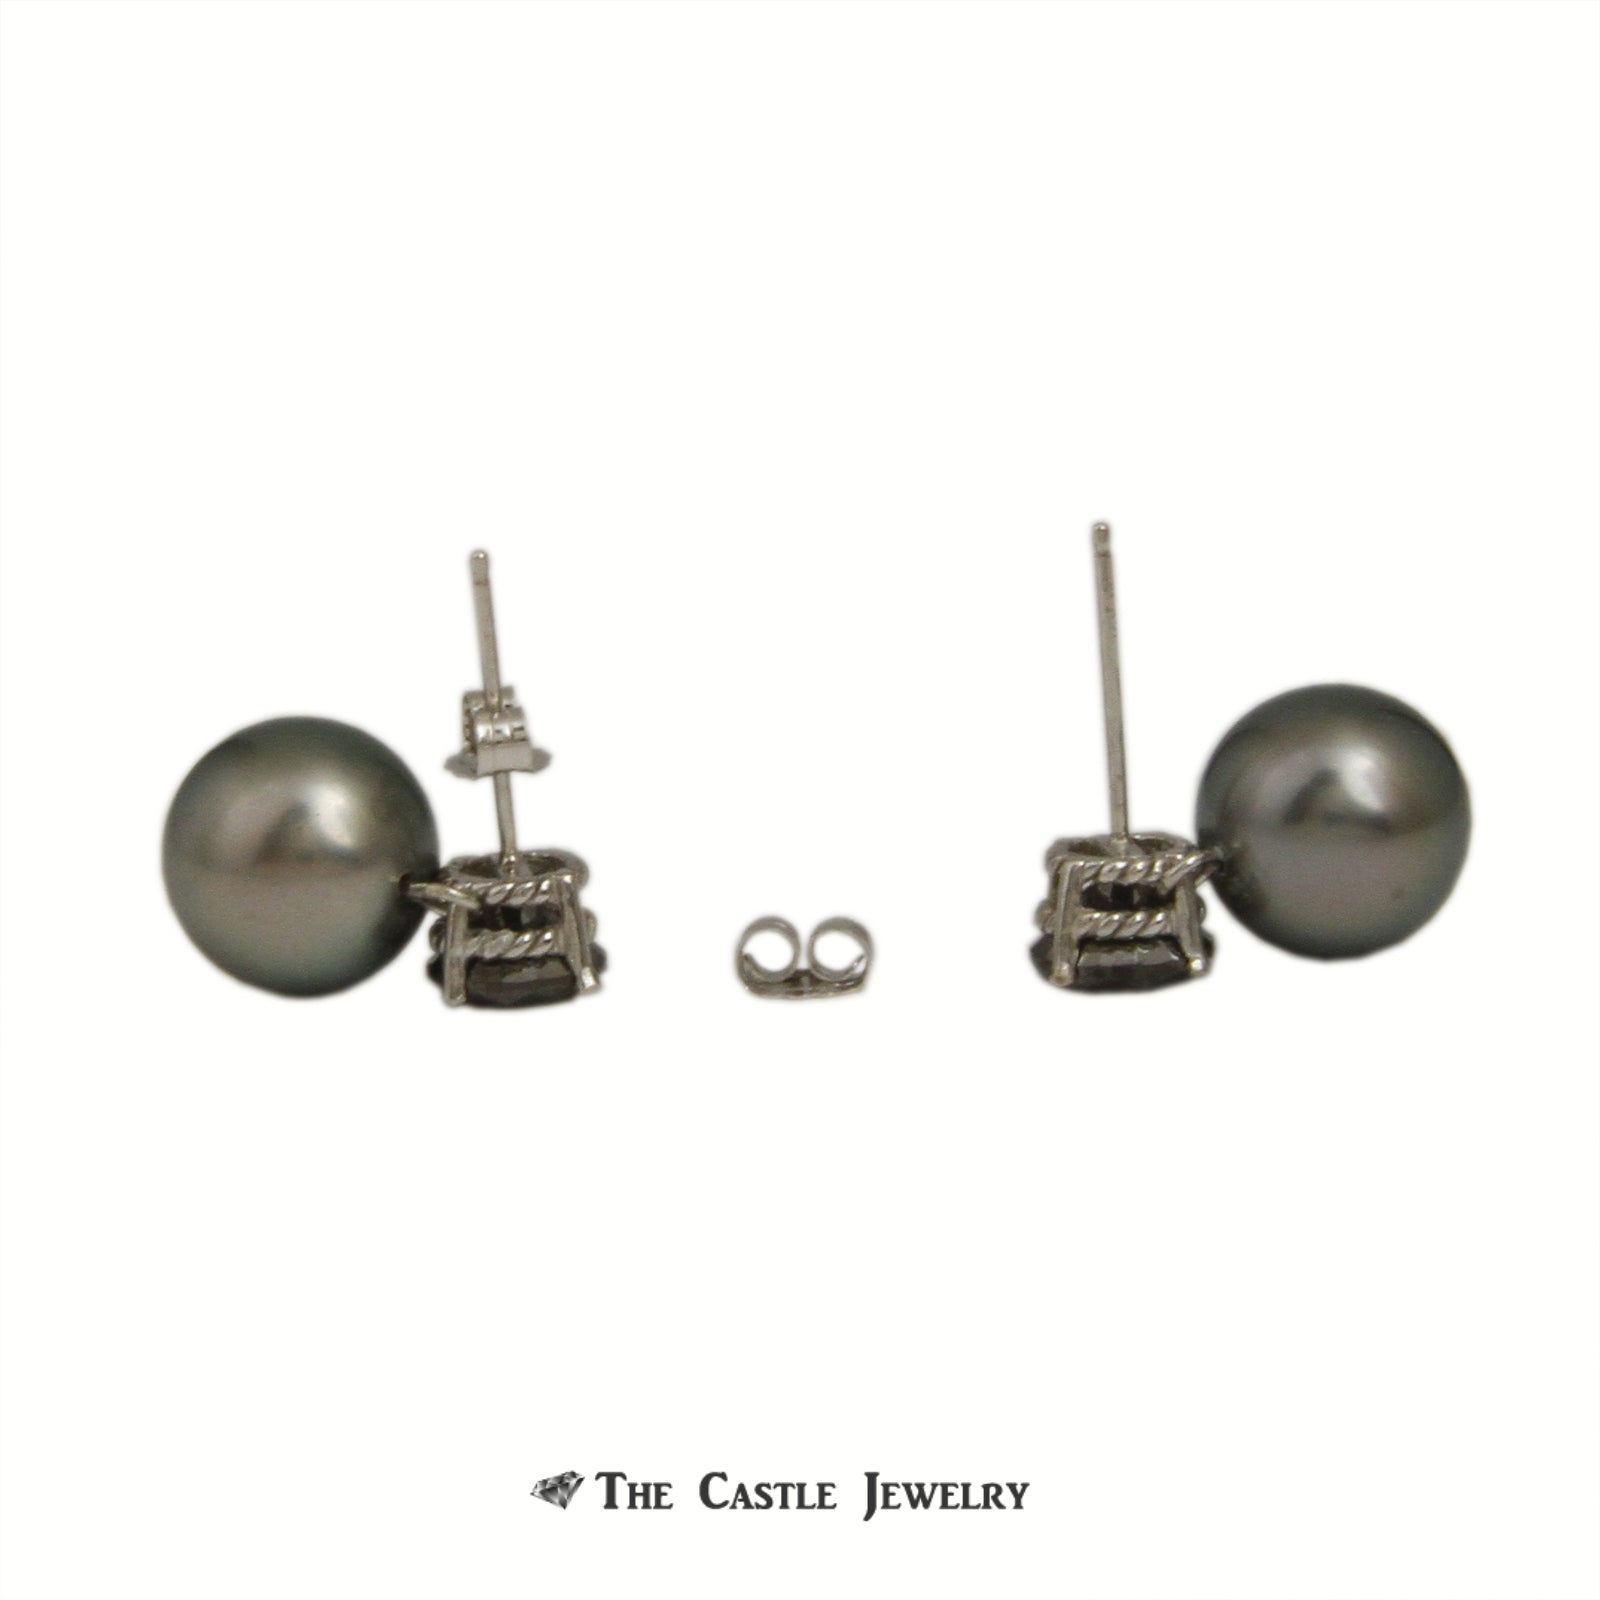 2cttw Black Diamond and Black 9.5mm Pearl Drop Earrings in 14K White Gold-1